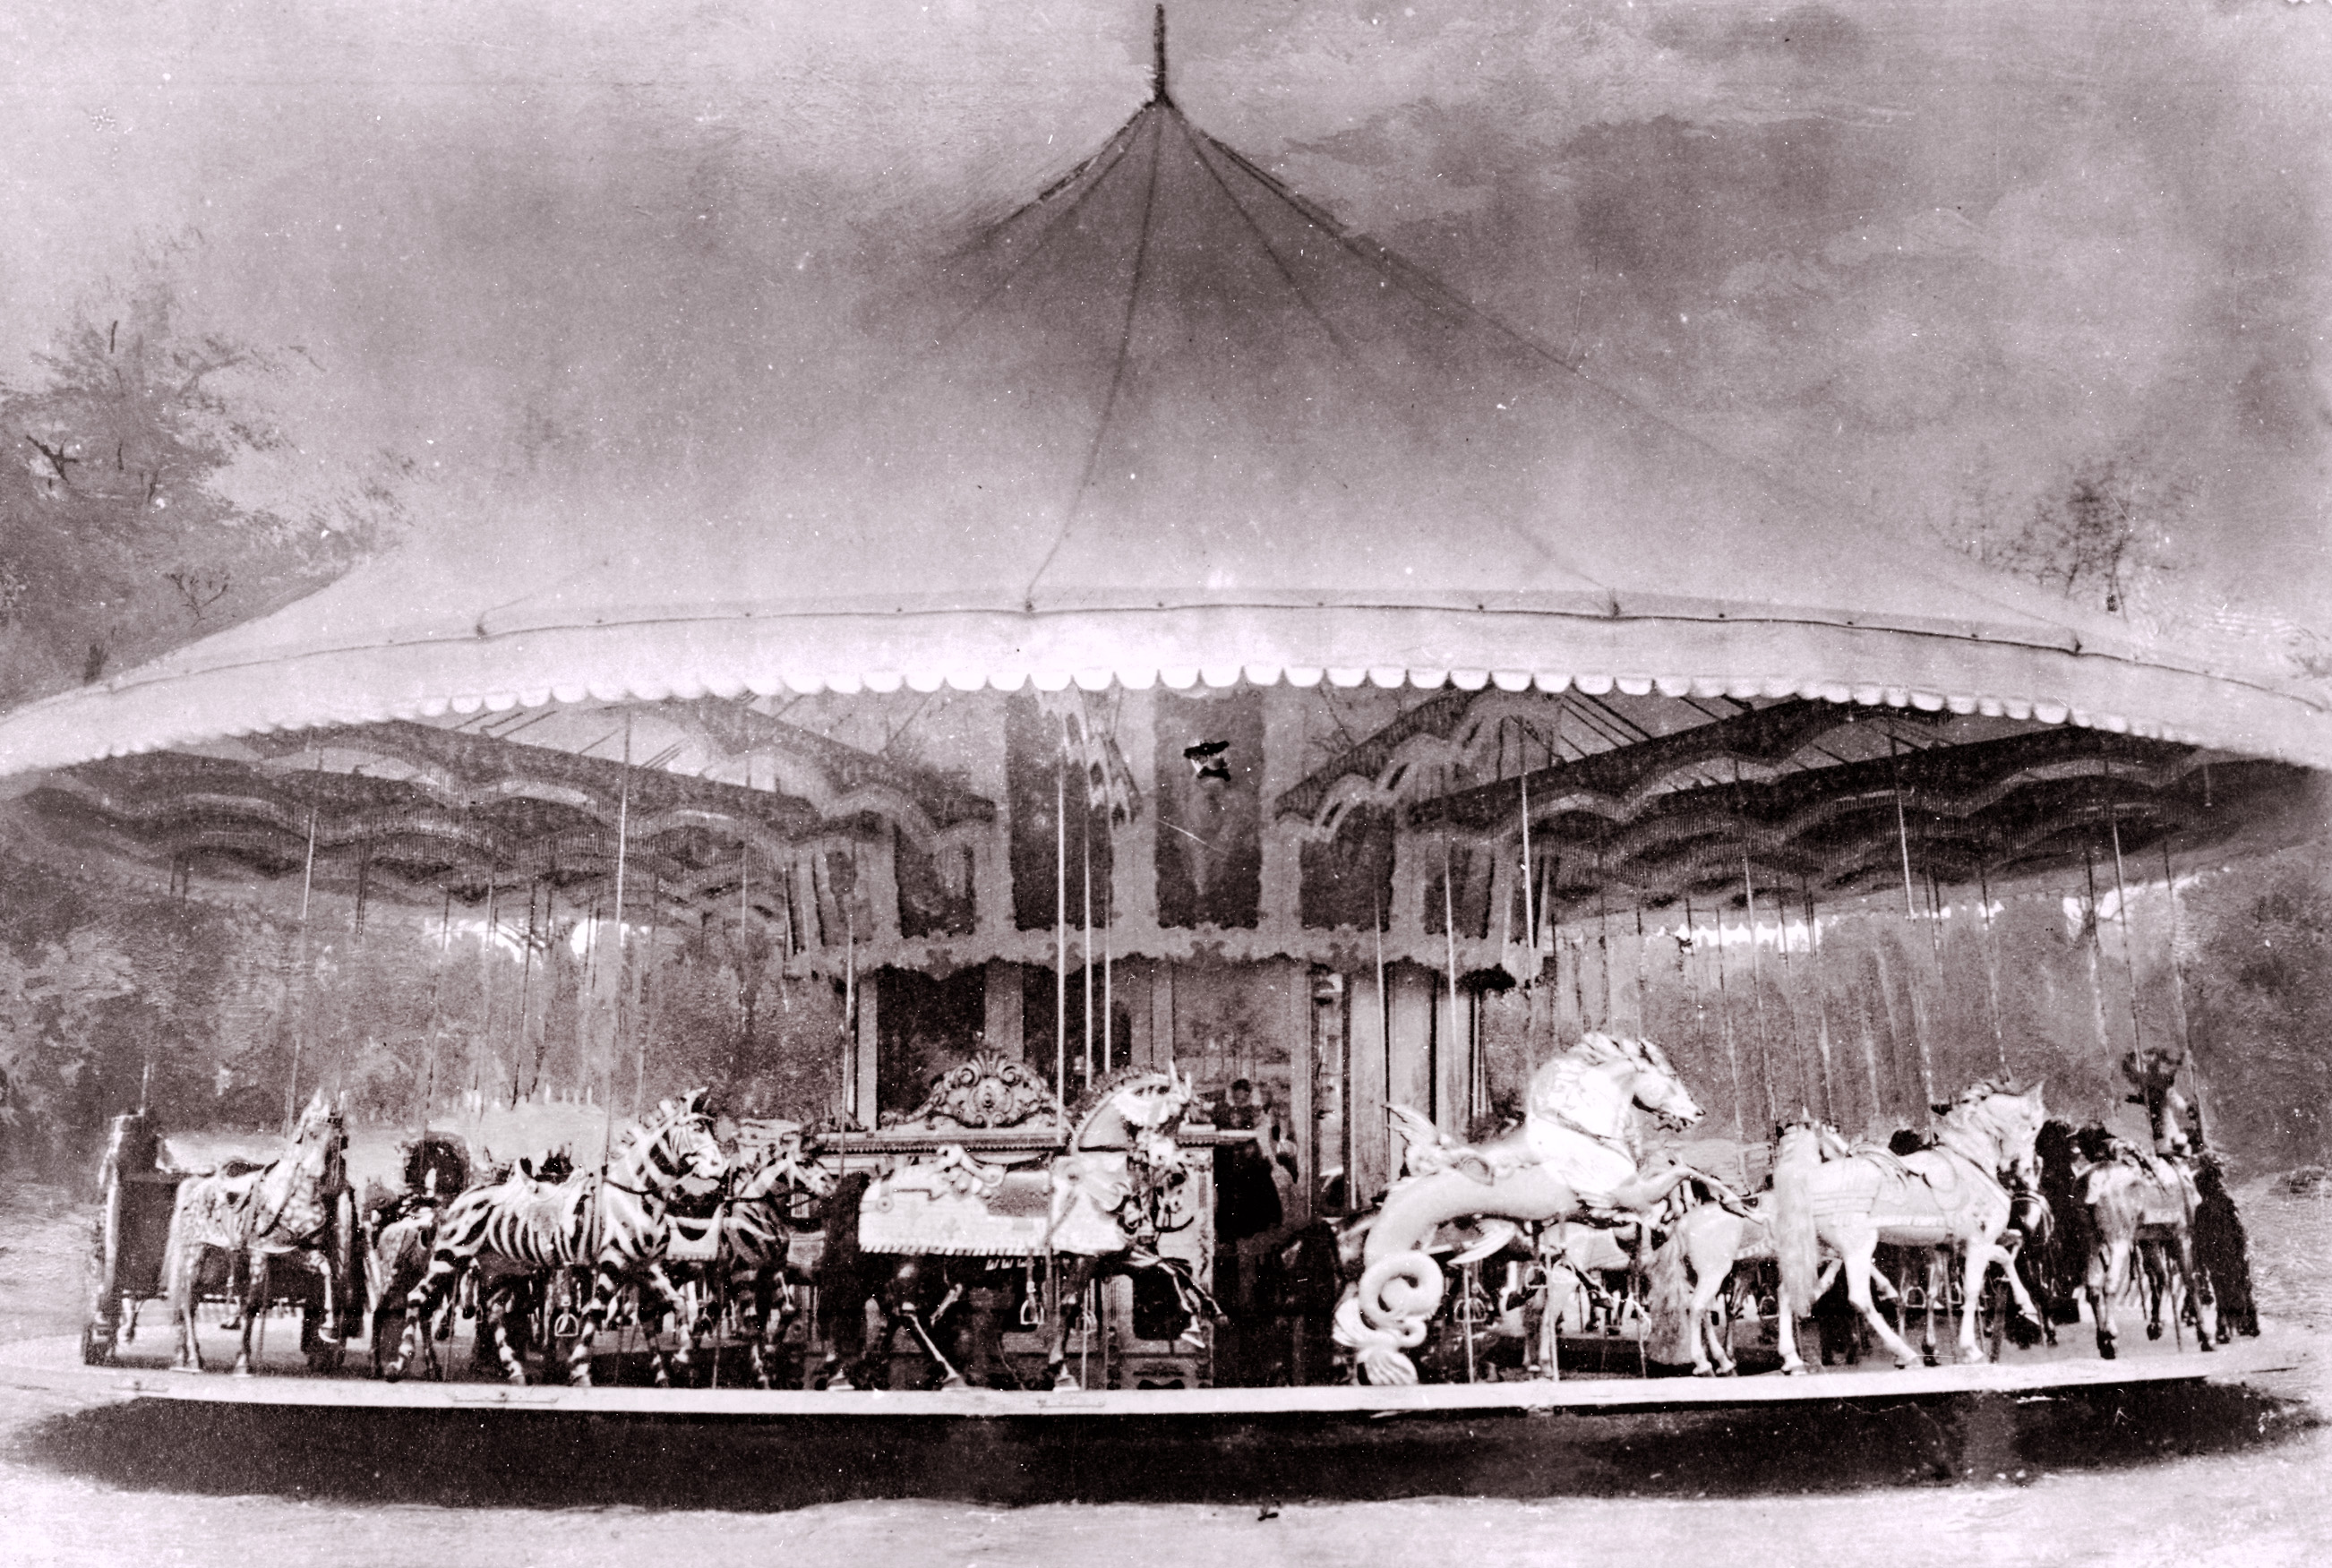 ca-1900-Muller-Dentzel-carousel-factory-photo